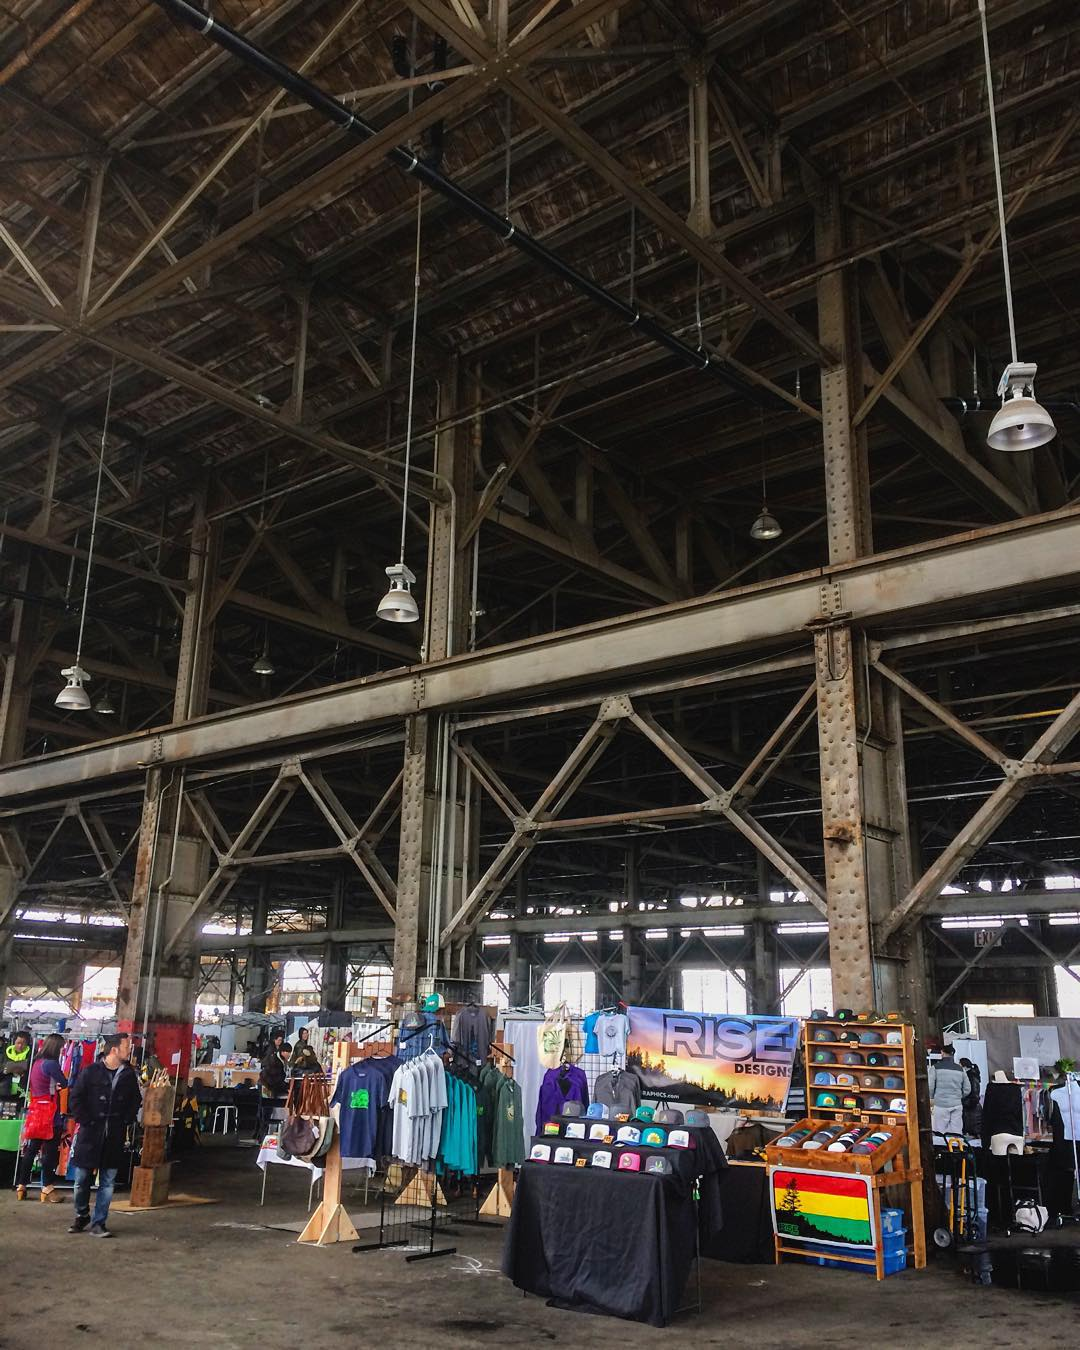 Happy Sunday! We're down in San Francisco at Pier 70 staying nice and dry in this massive warehouse. Come check us out at @urbanairmarket until 5pm today. #risedesigns #urbanairmarket #sanfrancisco #risedesignstahoe